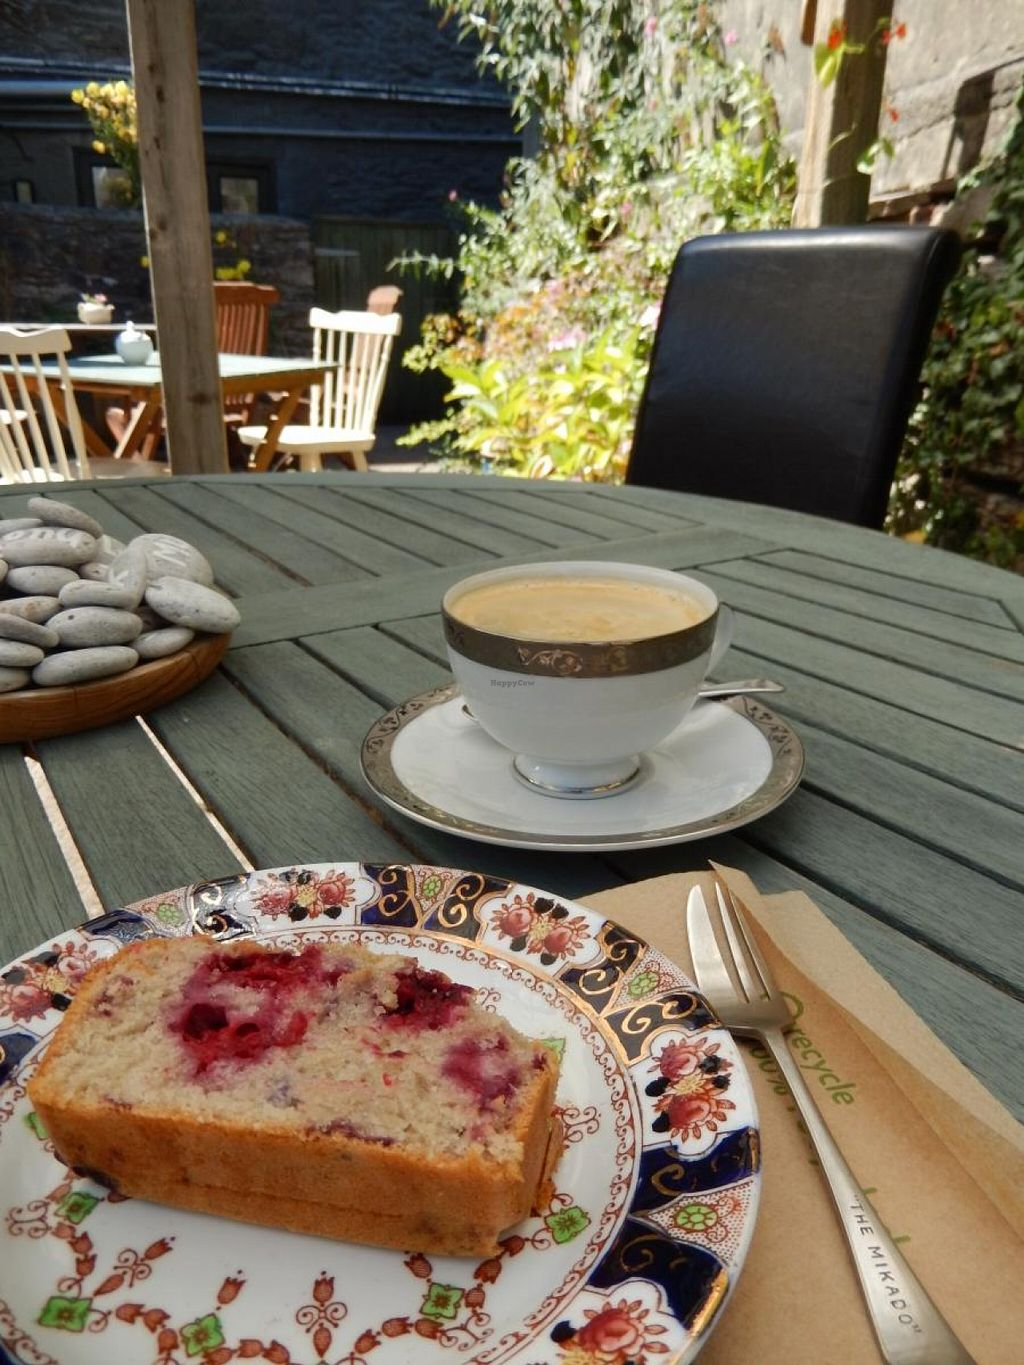 """Photo of Oats Healthy Living Store  by <a href=""""/members/profile/CLRtraveller"""">CLRtraveller</a> <br/>vegan berry cake <br/> August 9, 2015  - <a href='/contact/abuse/image/61674/112825'>Report</a>"""